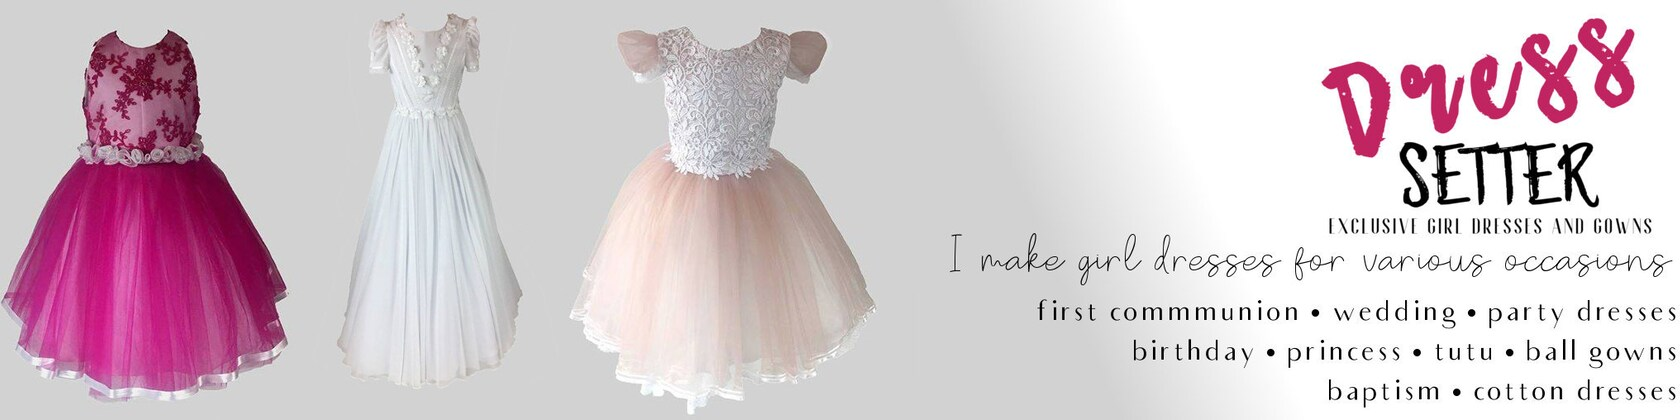 Exclusive Girl Dresses and Gowns by DressSetter on Etsy